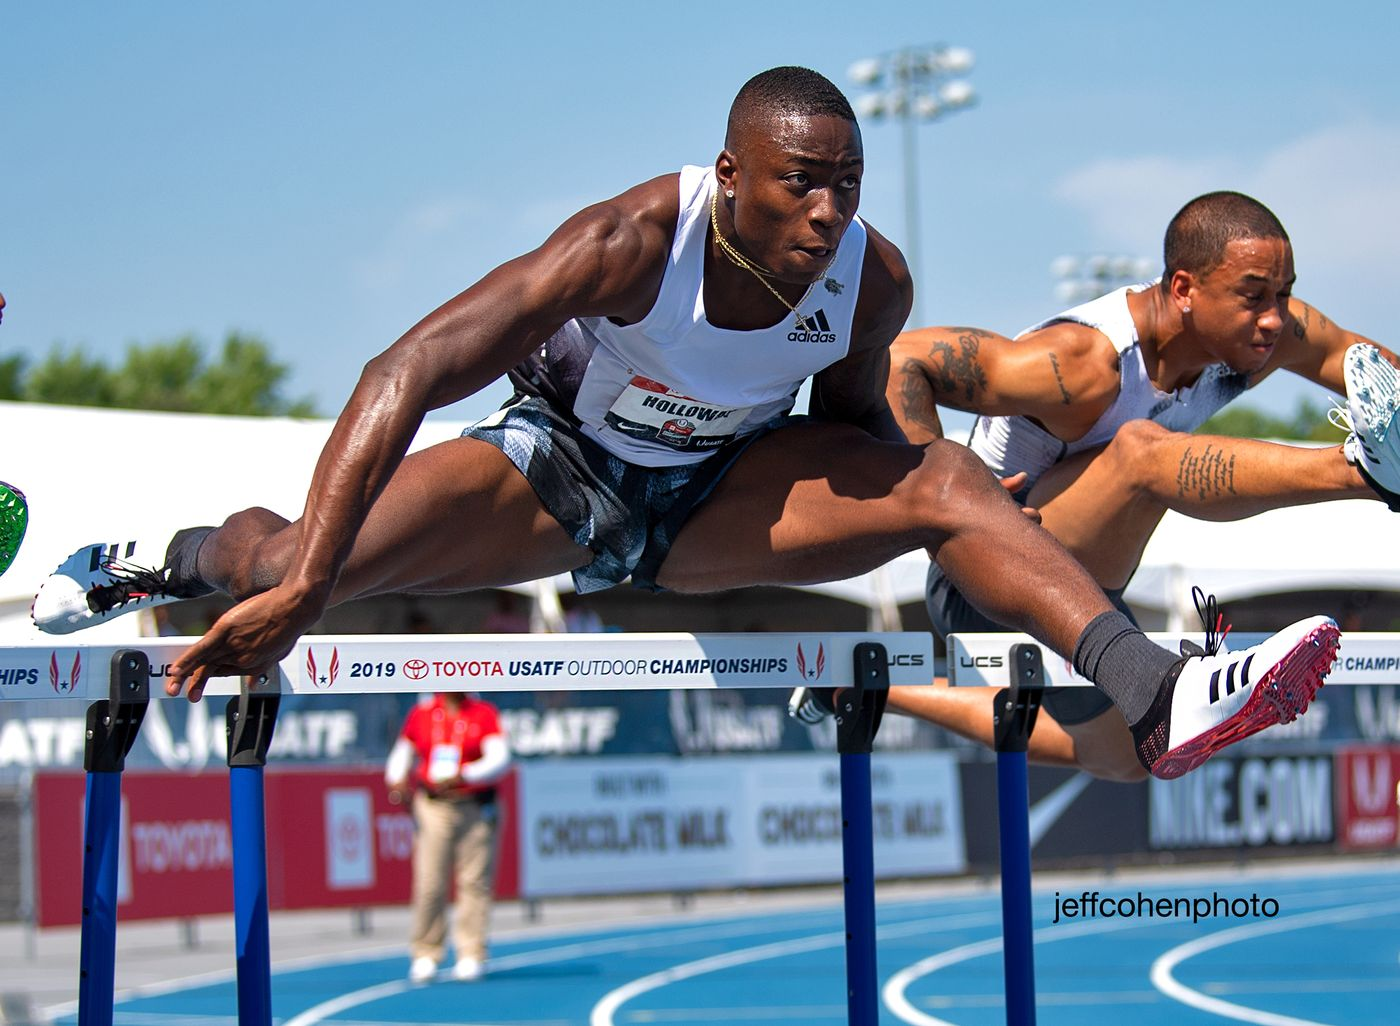 2019-USATF-Outdoor-Champs-day-3-holloway-110mh--1225---jeff-cohen-photo--web.jpg